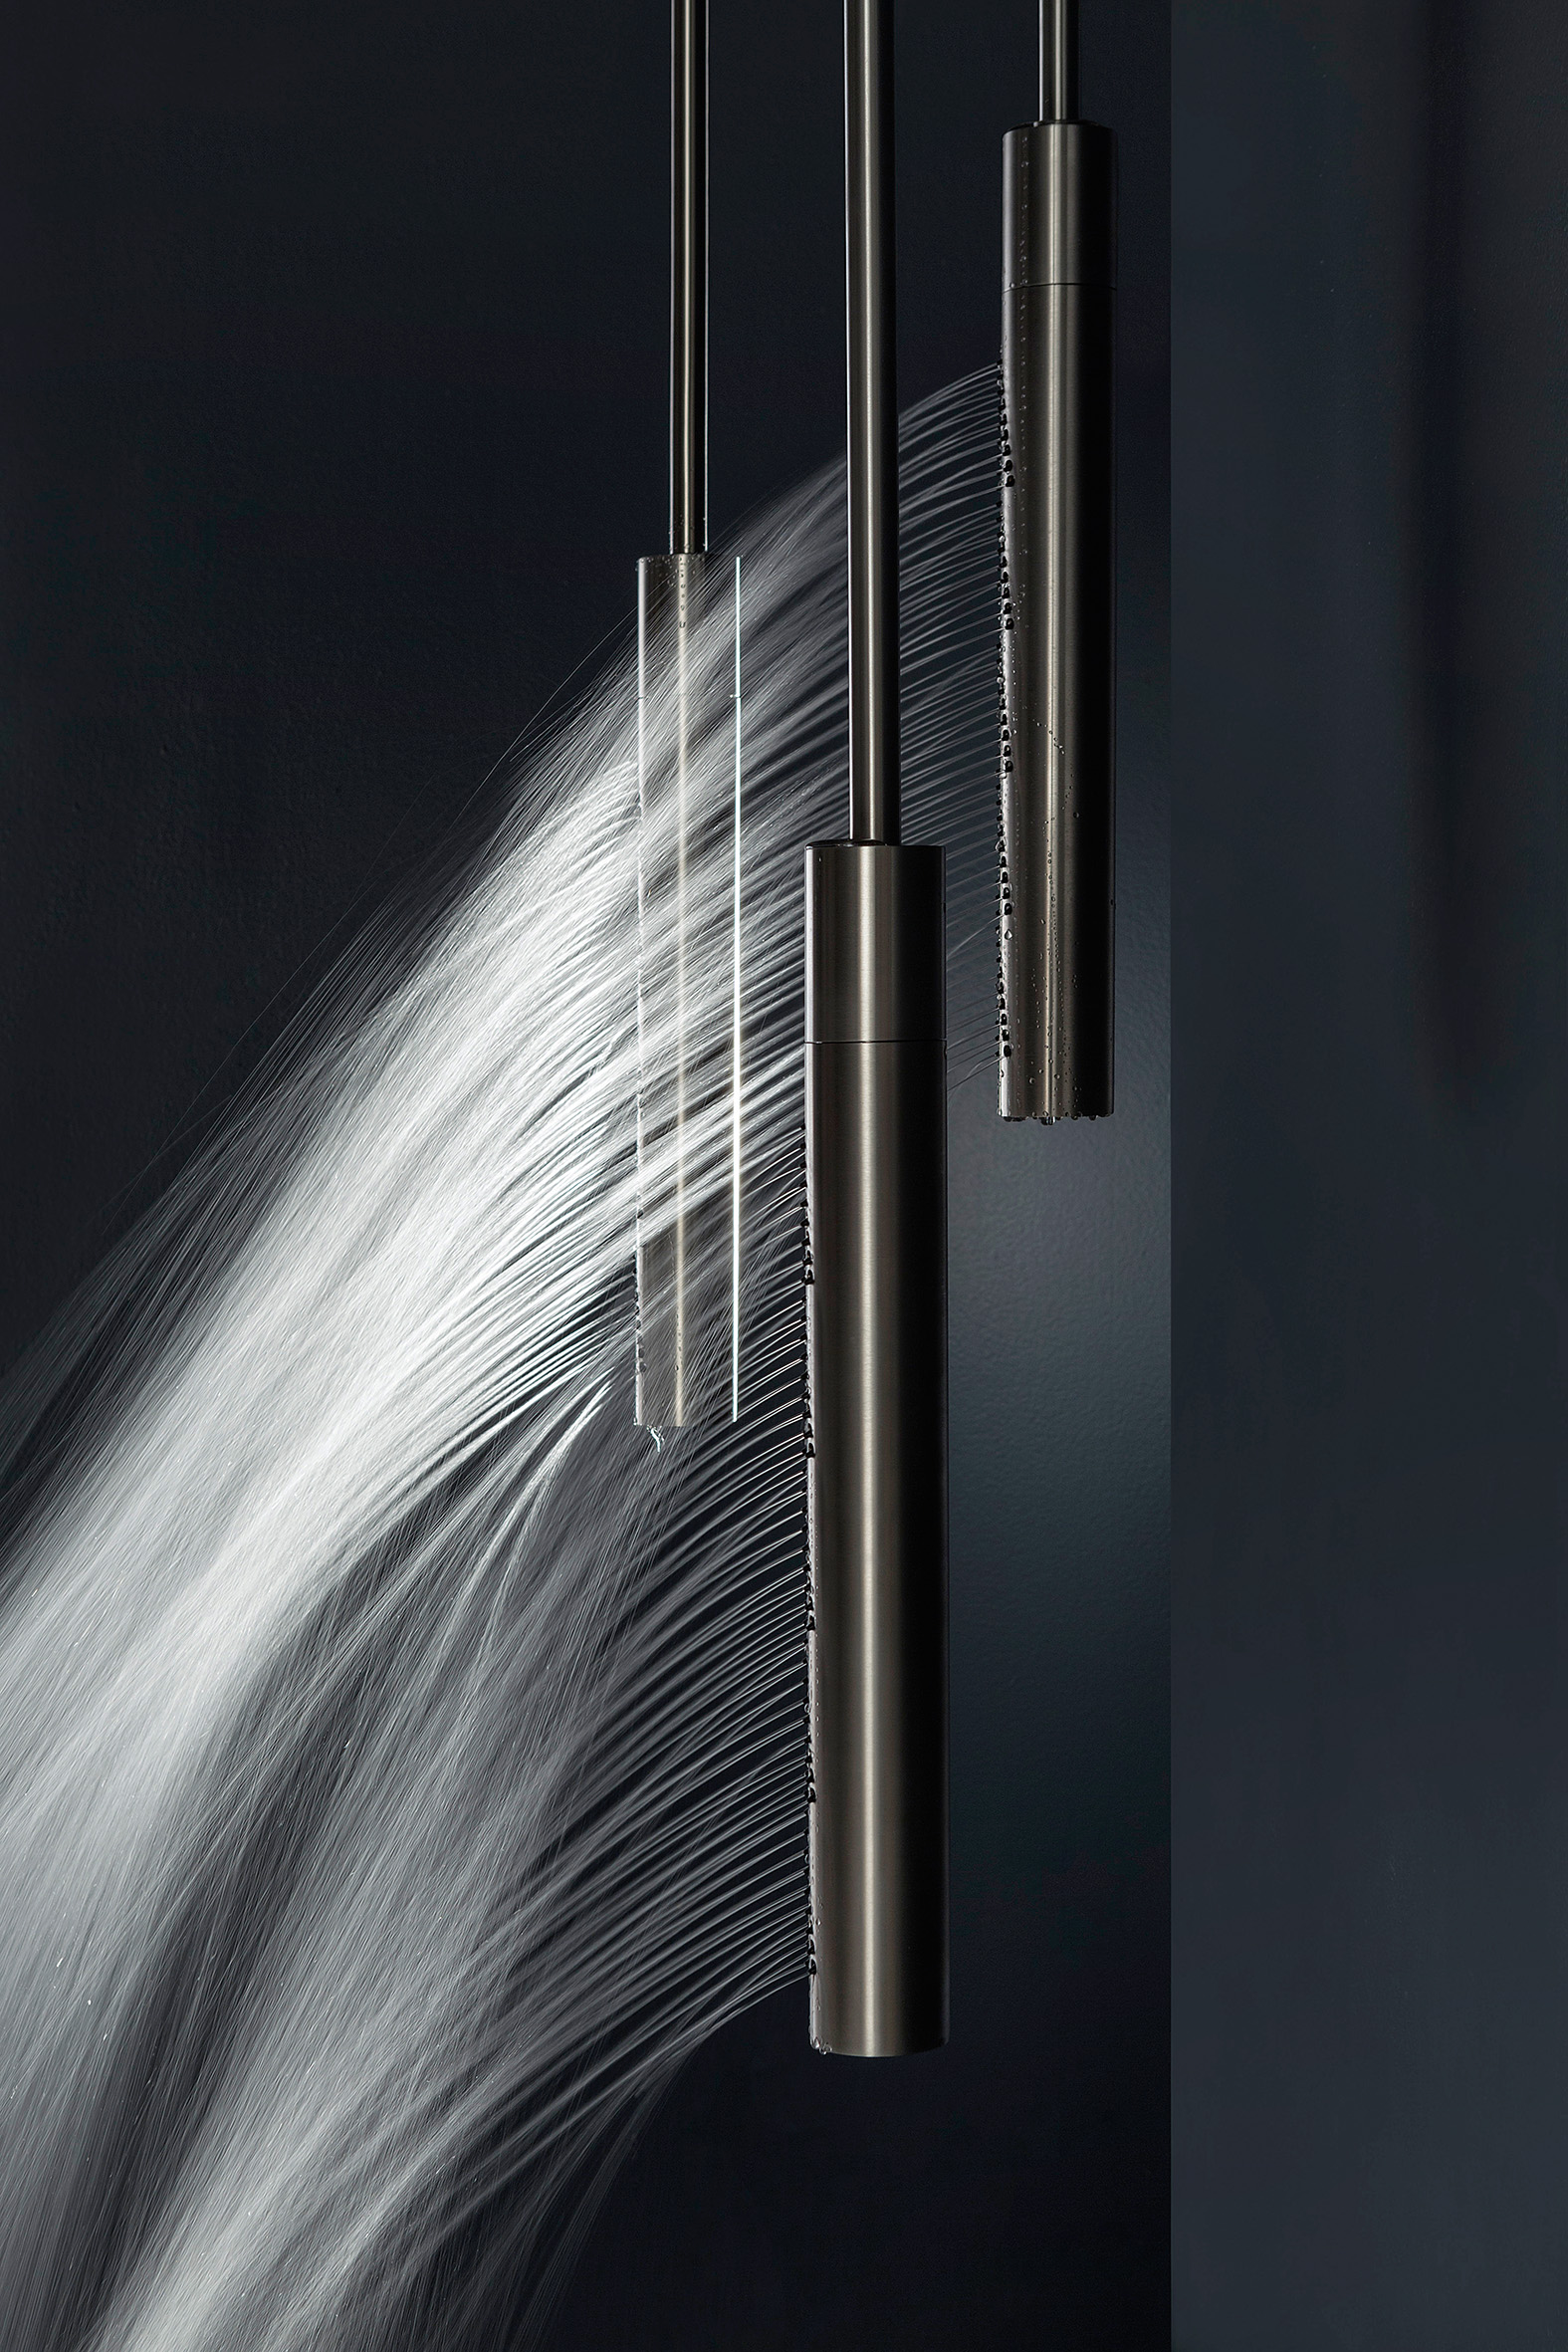 Great success at the Salone del Mobile for the new Z316 shower heads